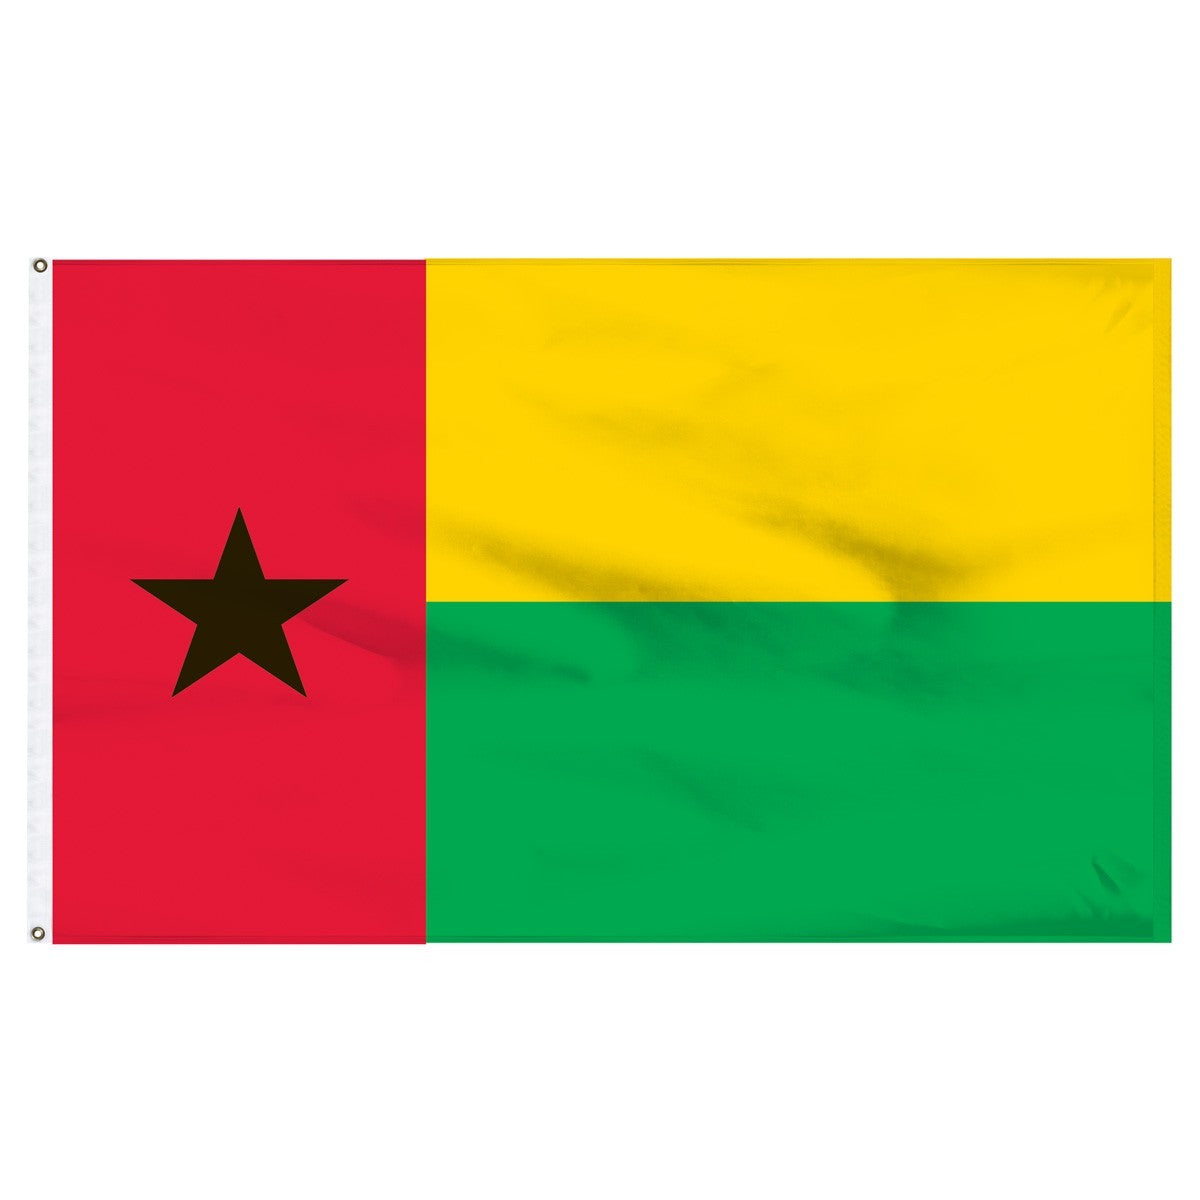 guinea bissau flags for sale 1-800 flags